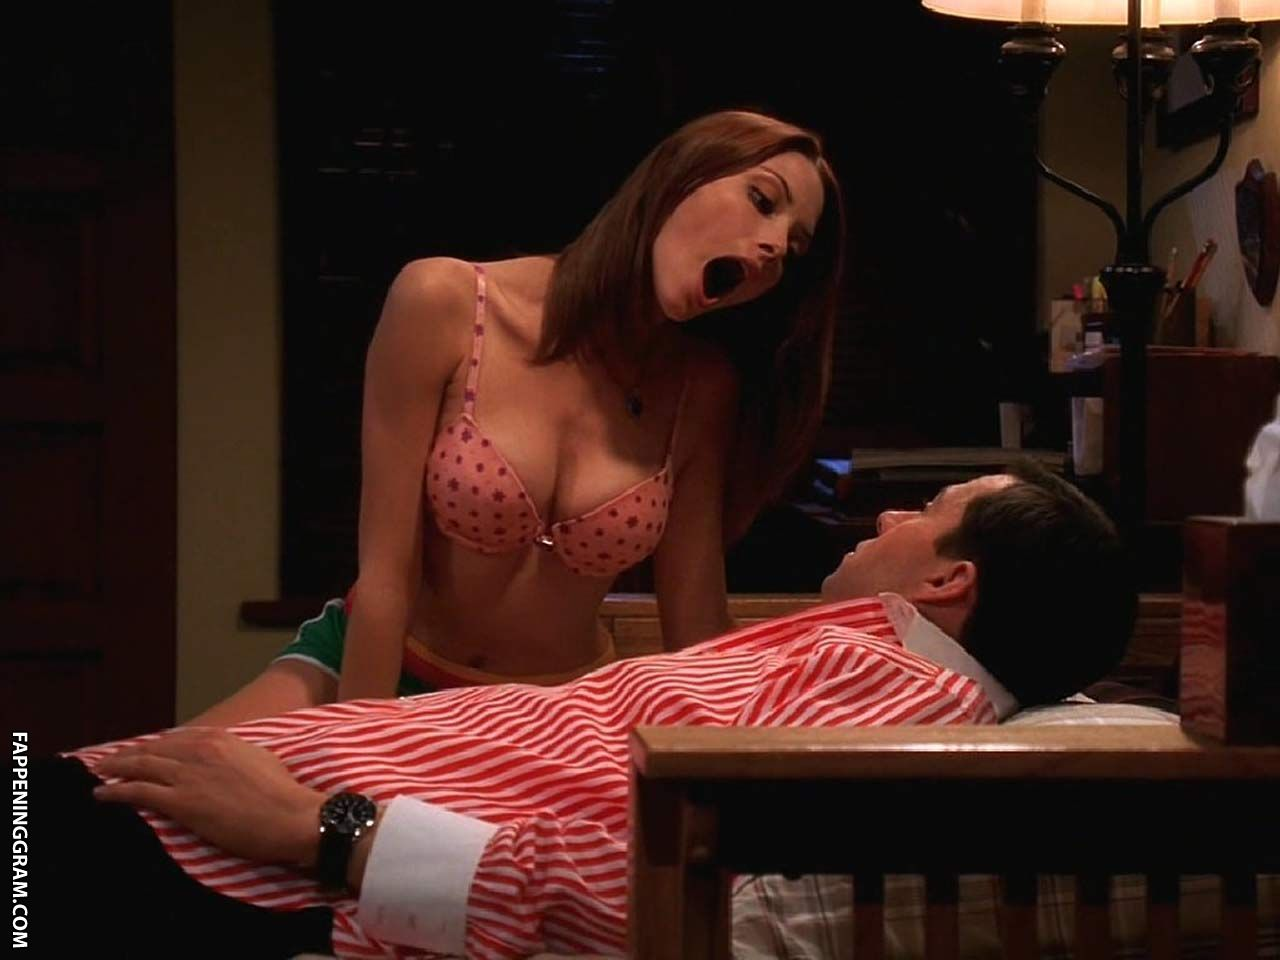 April bowlby, two and a half men kandi celebrity nude and sexy photos